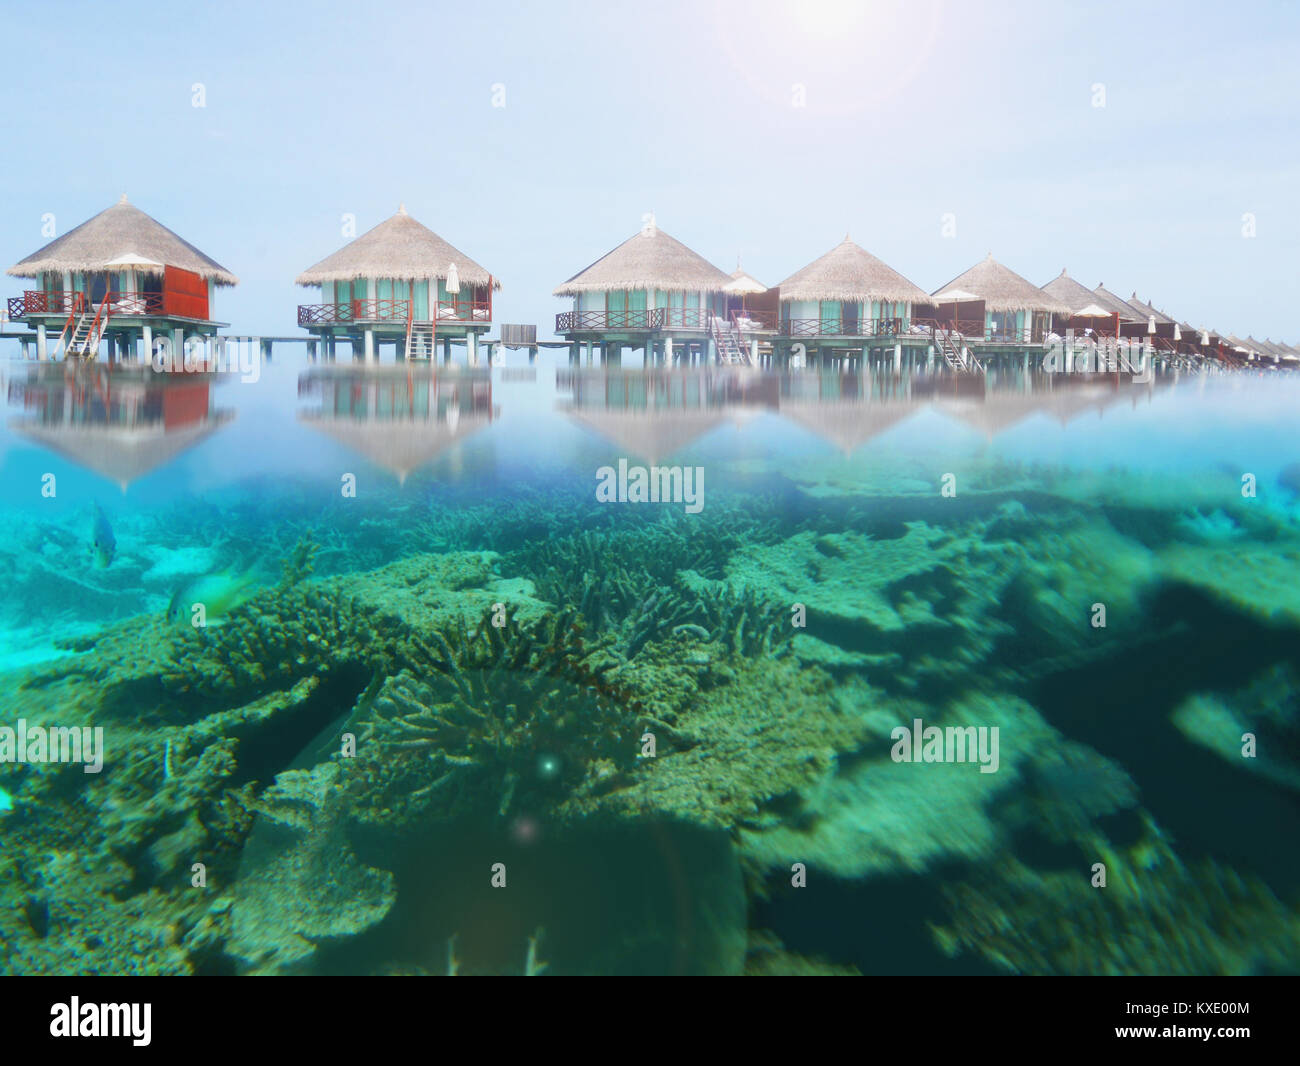 Line of water villa bungalows in a Maldives island resort with reflection on water and underwater tropical coral - Stock Image